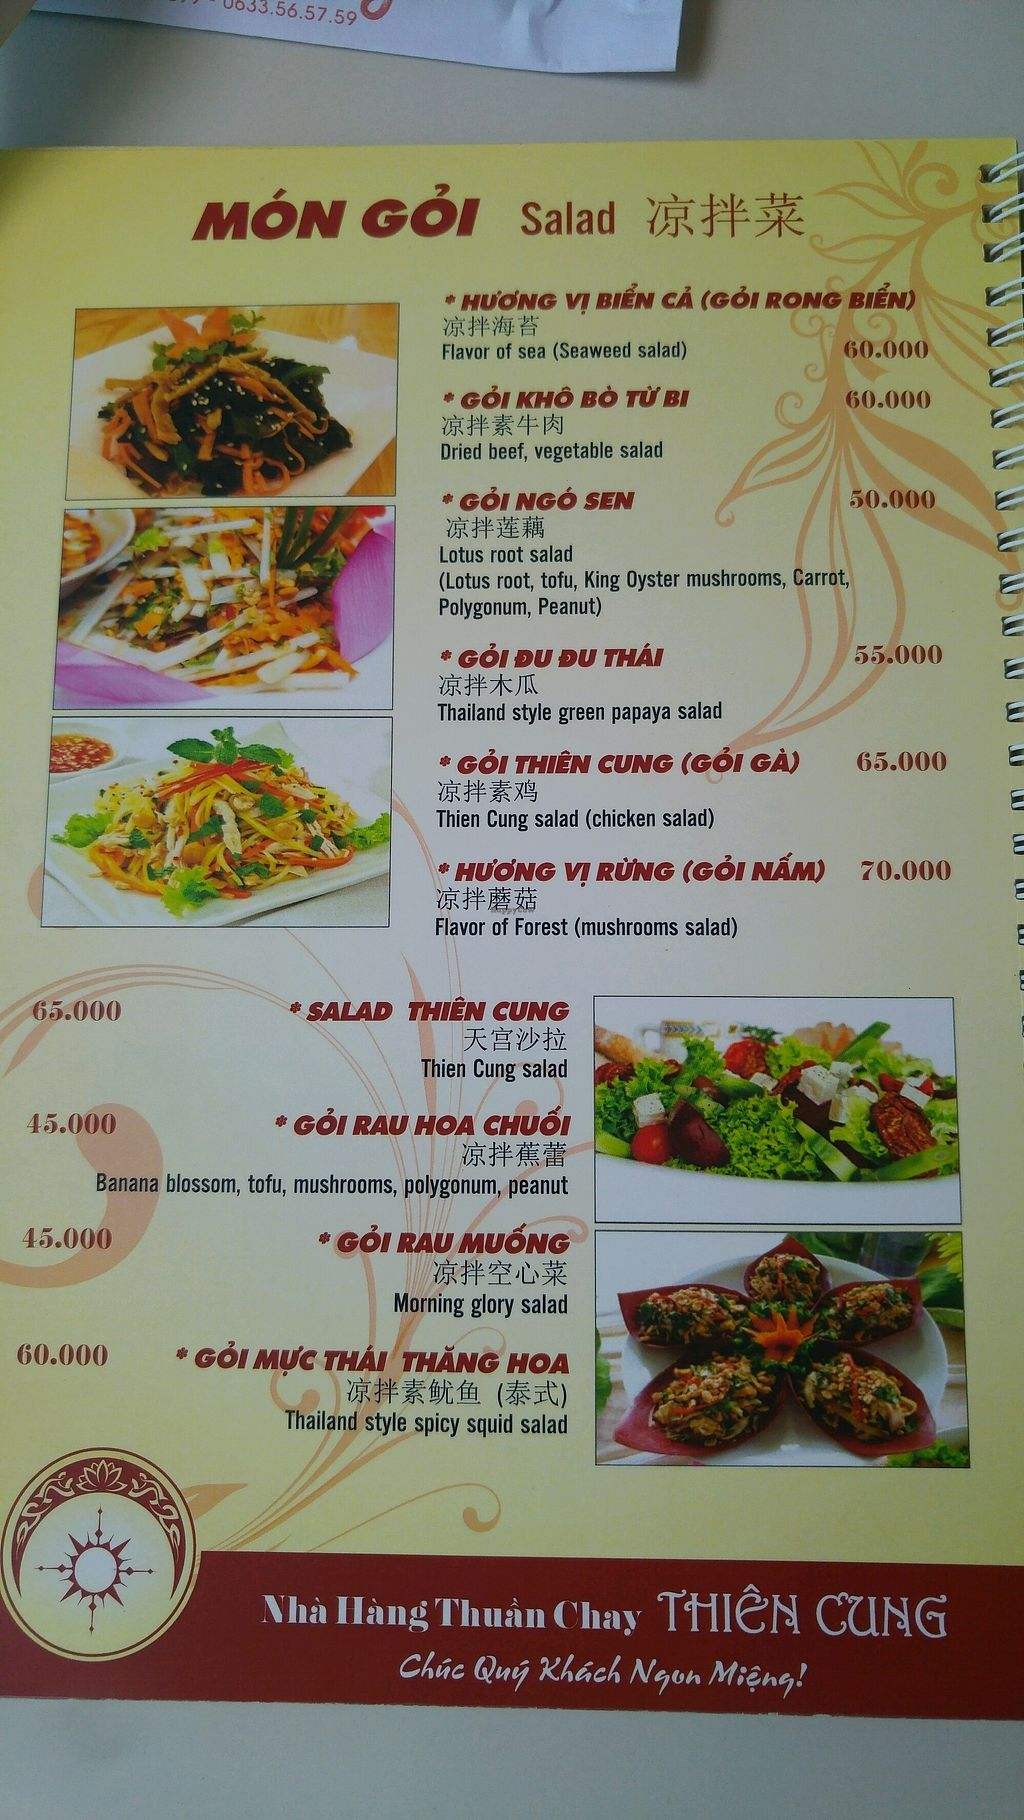 """Photo of Thien Cung - Loving Hut  by <a href=""""/members/profile/daveVN"""">daveVN</a> <br/>menu - salad <br/> September 19, 2017  - <a href='/contact/abuse/image/100280/306002'>Report</a>"""